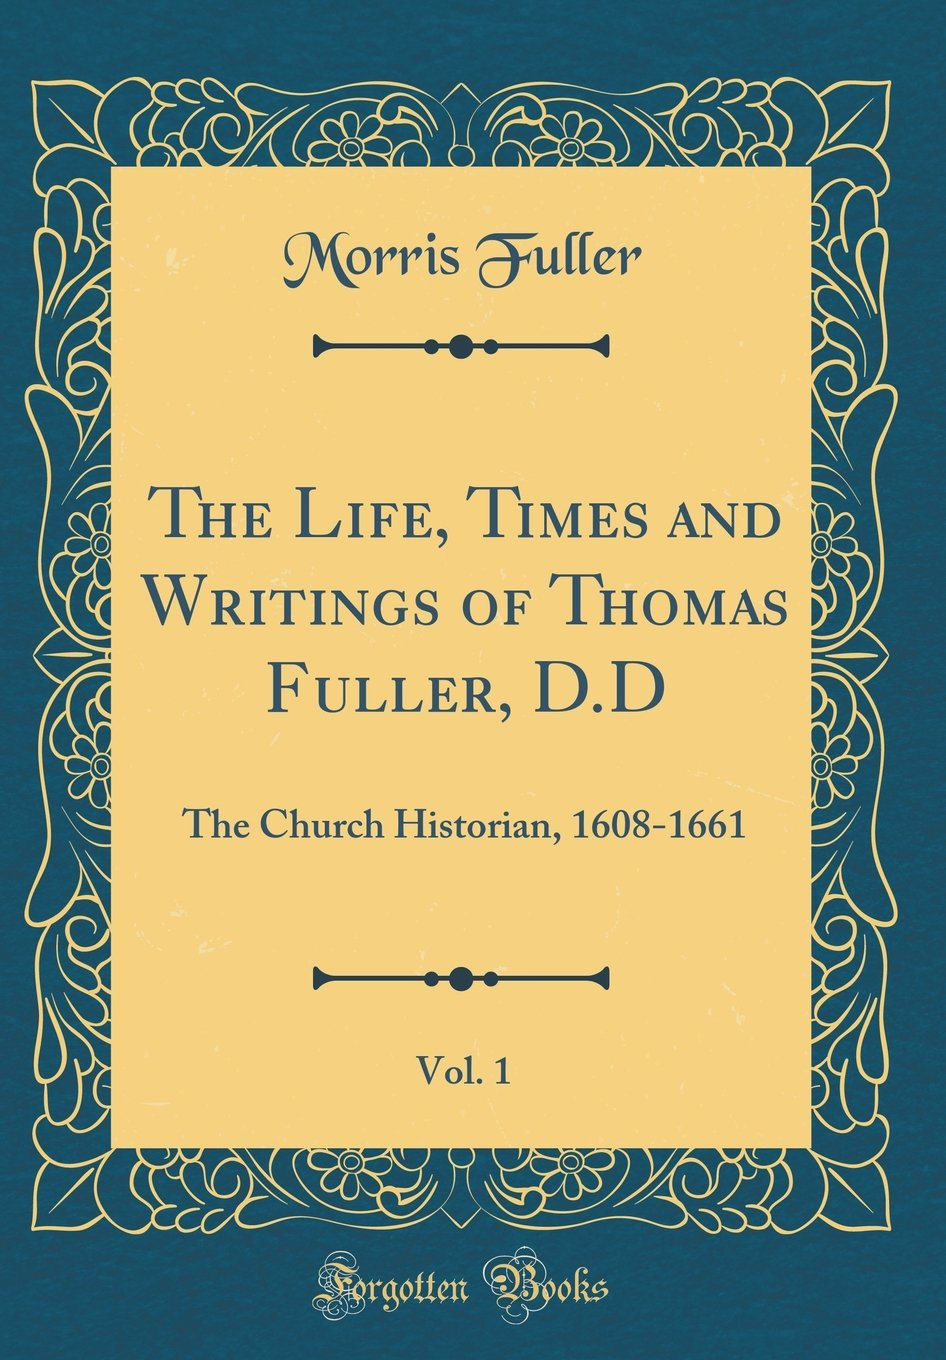 The Life, Times and Writings of Thomas Fuller, D.D, Vol. 1: The Church Historian, 1608-1661 (Classic Reprint) PDF